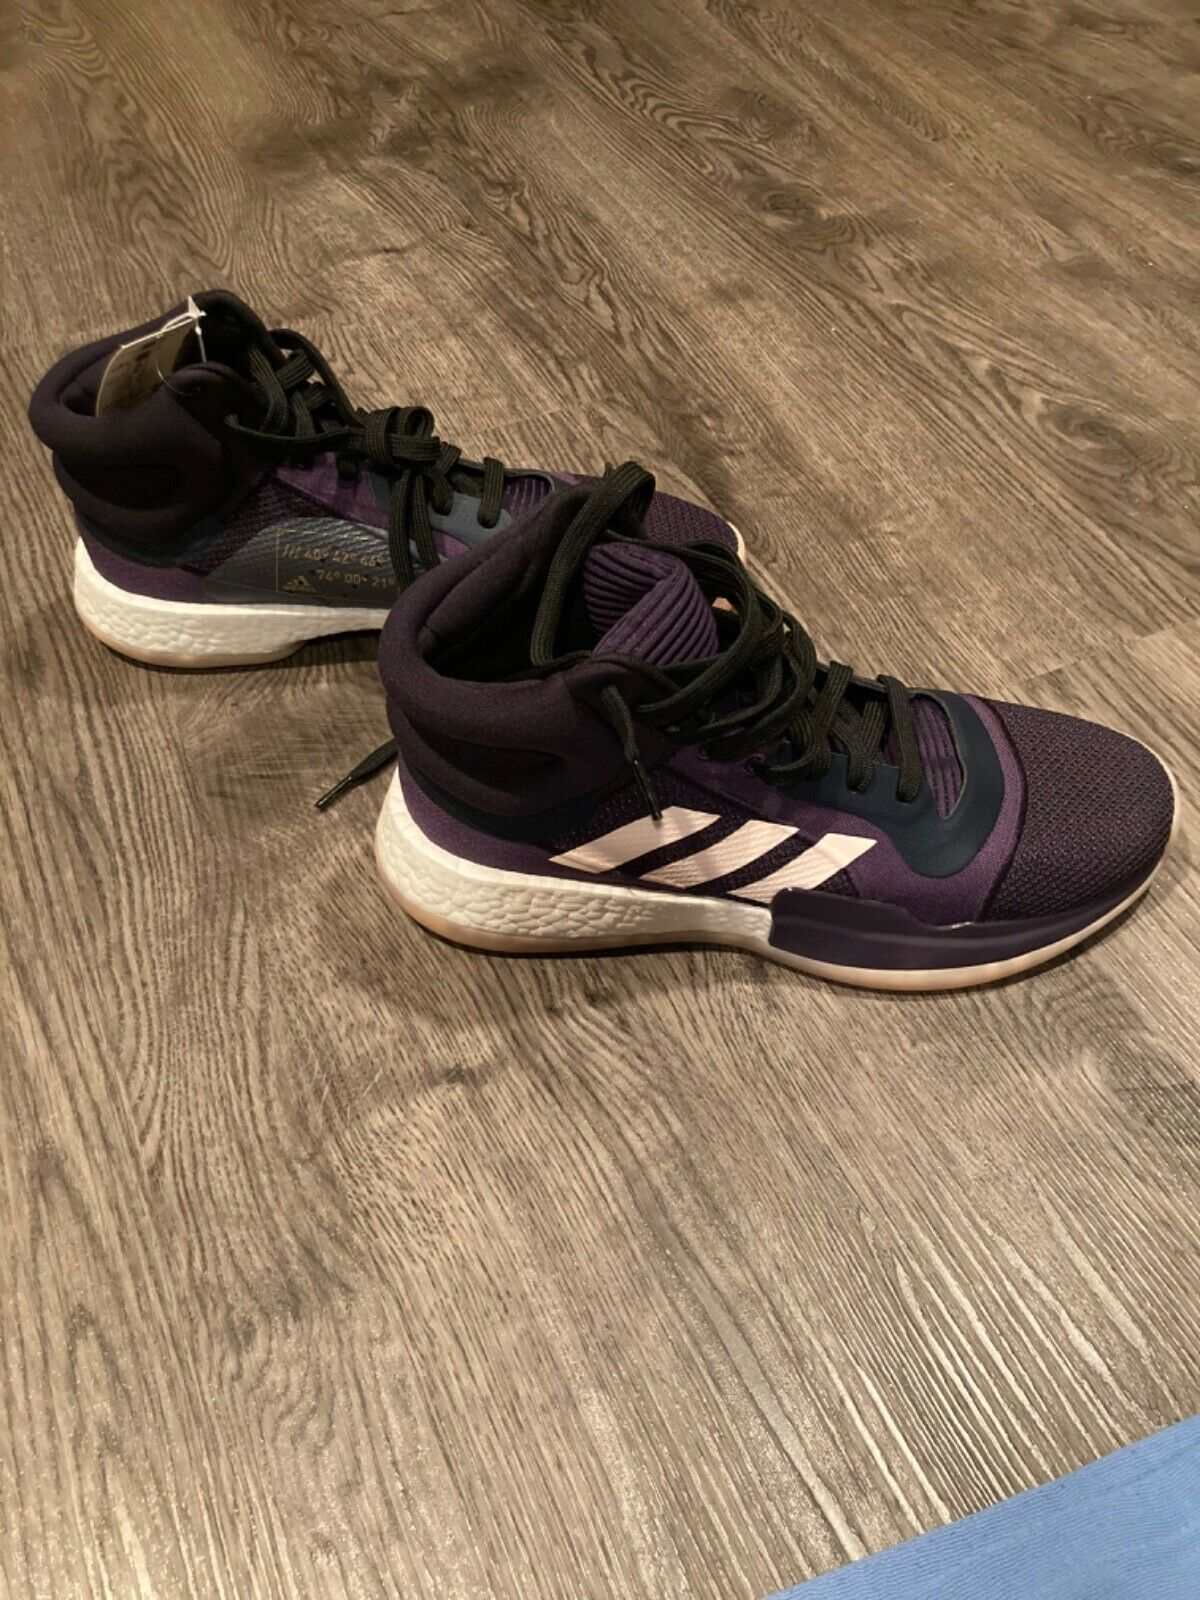 New Adidas Marquee Boost Basketball Sneakers G27739